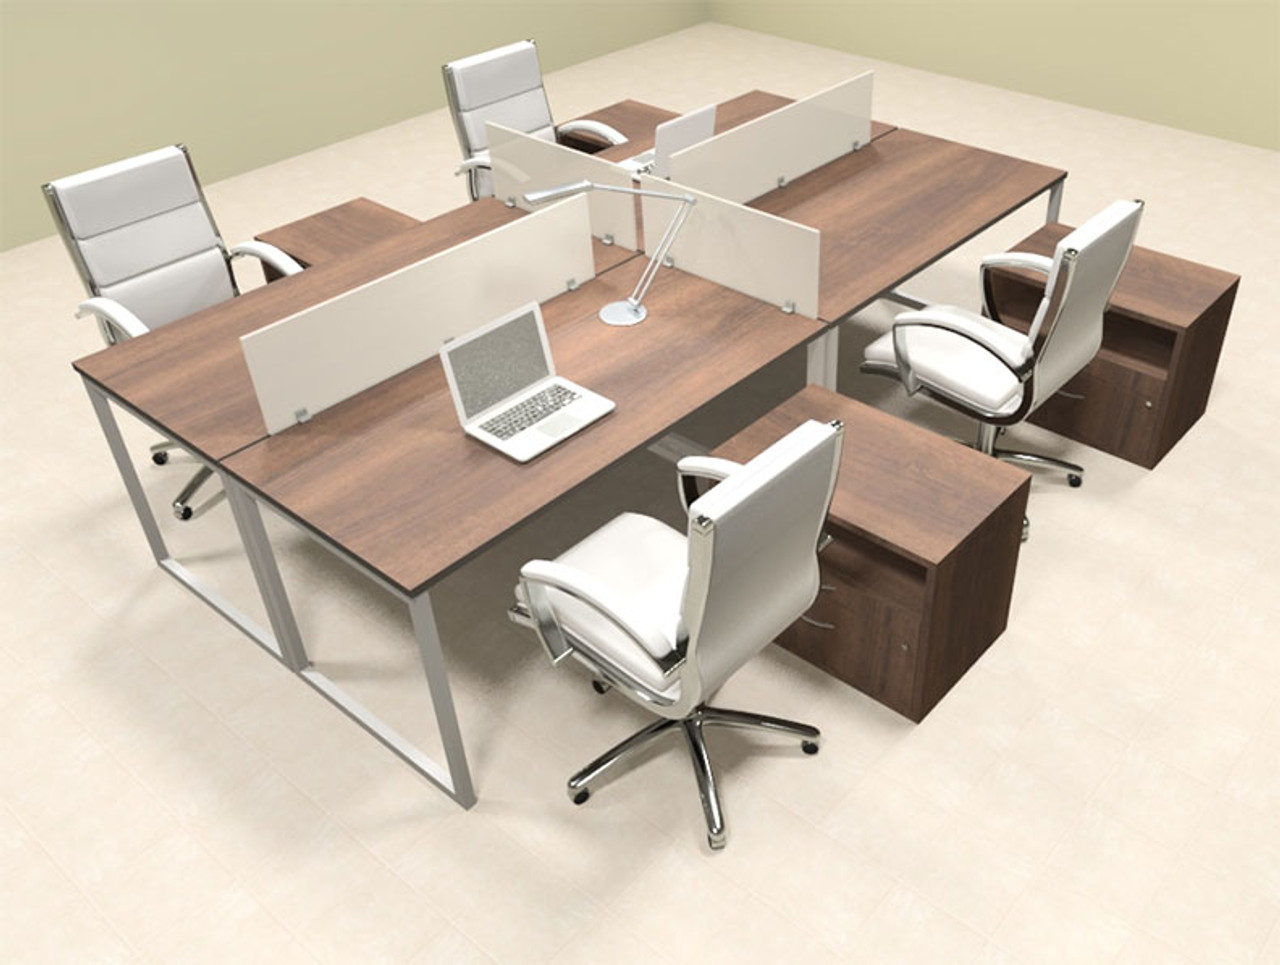 Four Person Modern Acrylic Divider Office Workstation, #AL-OPN-FP63